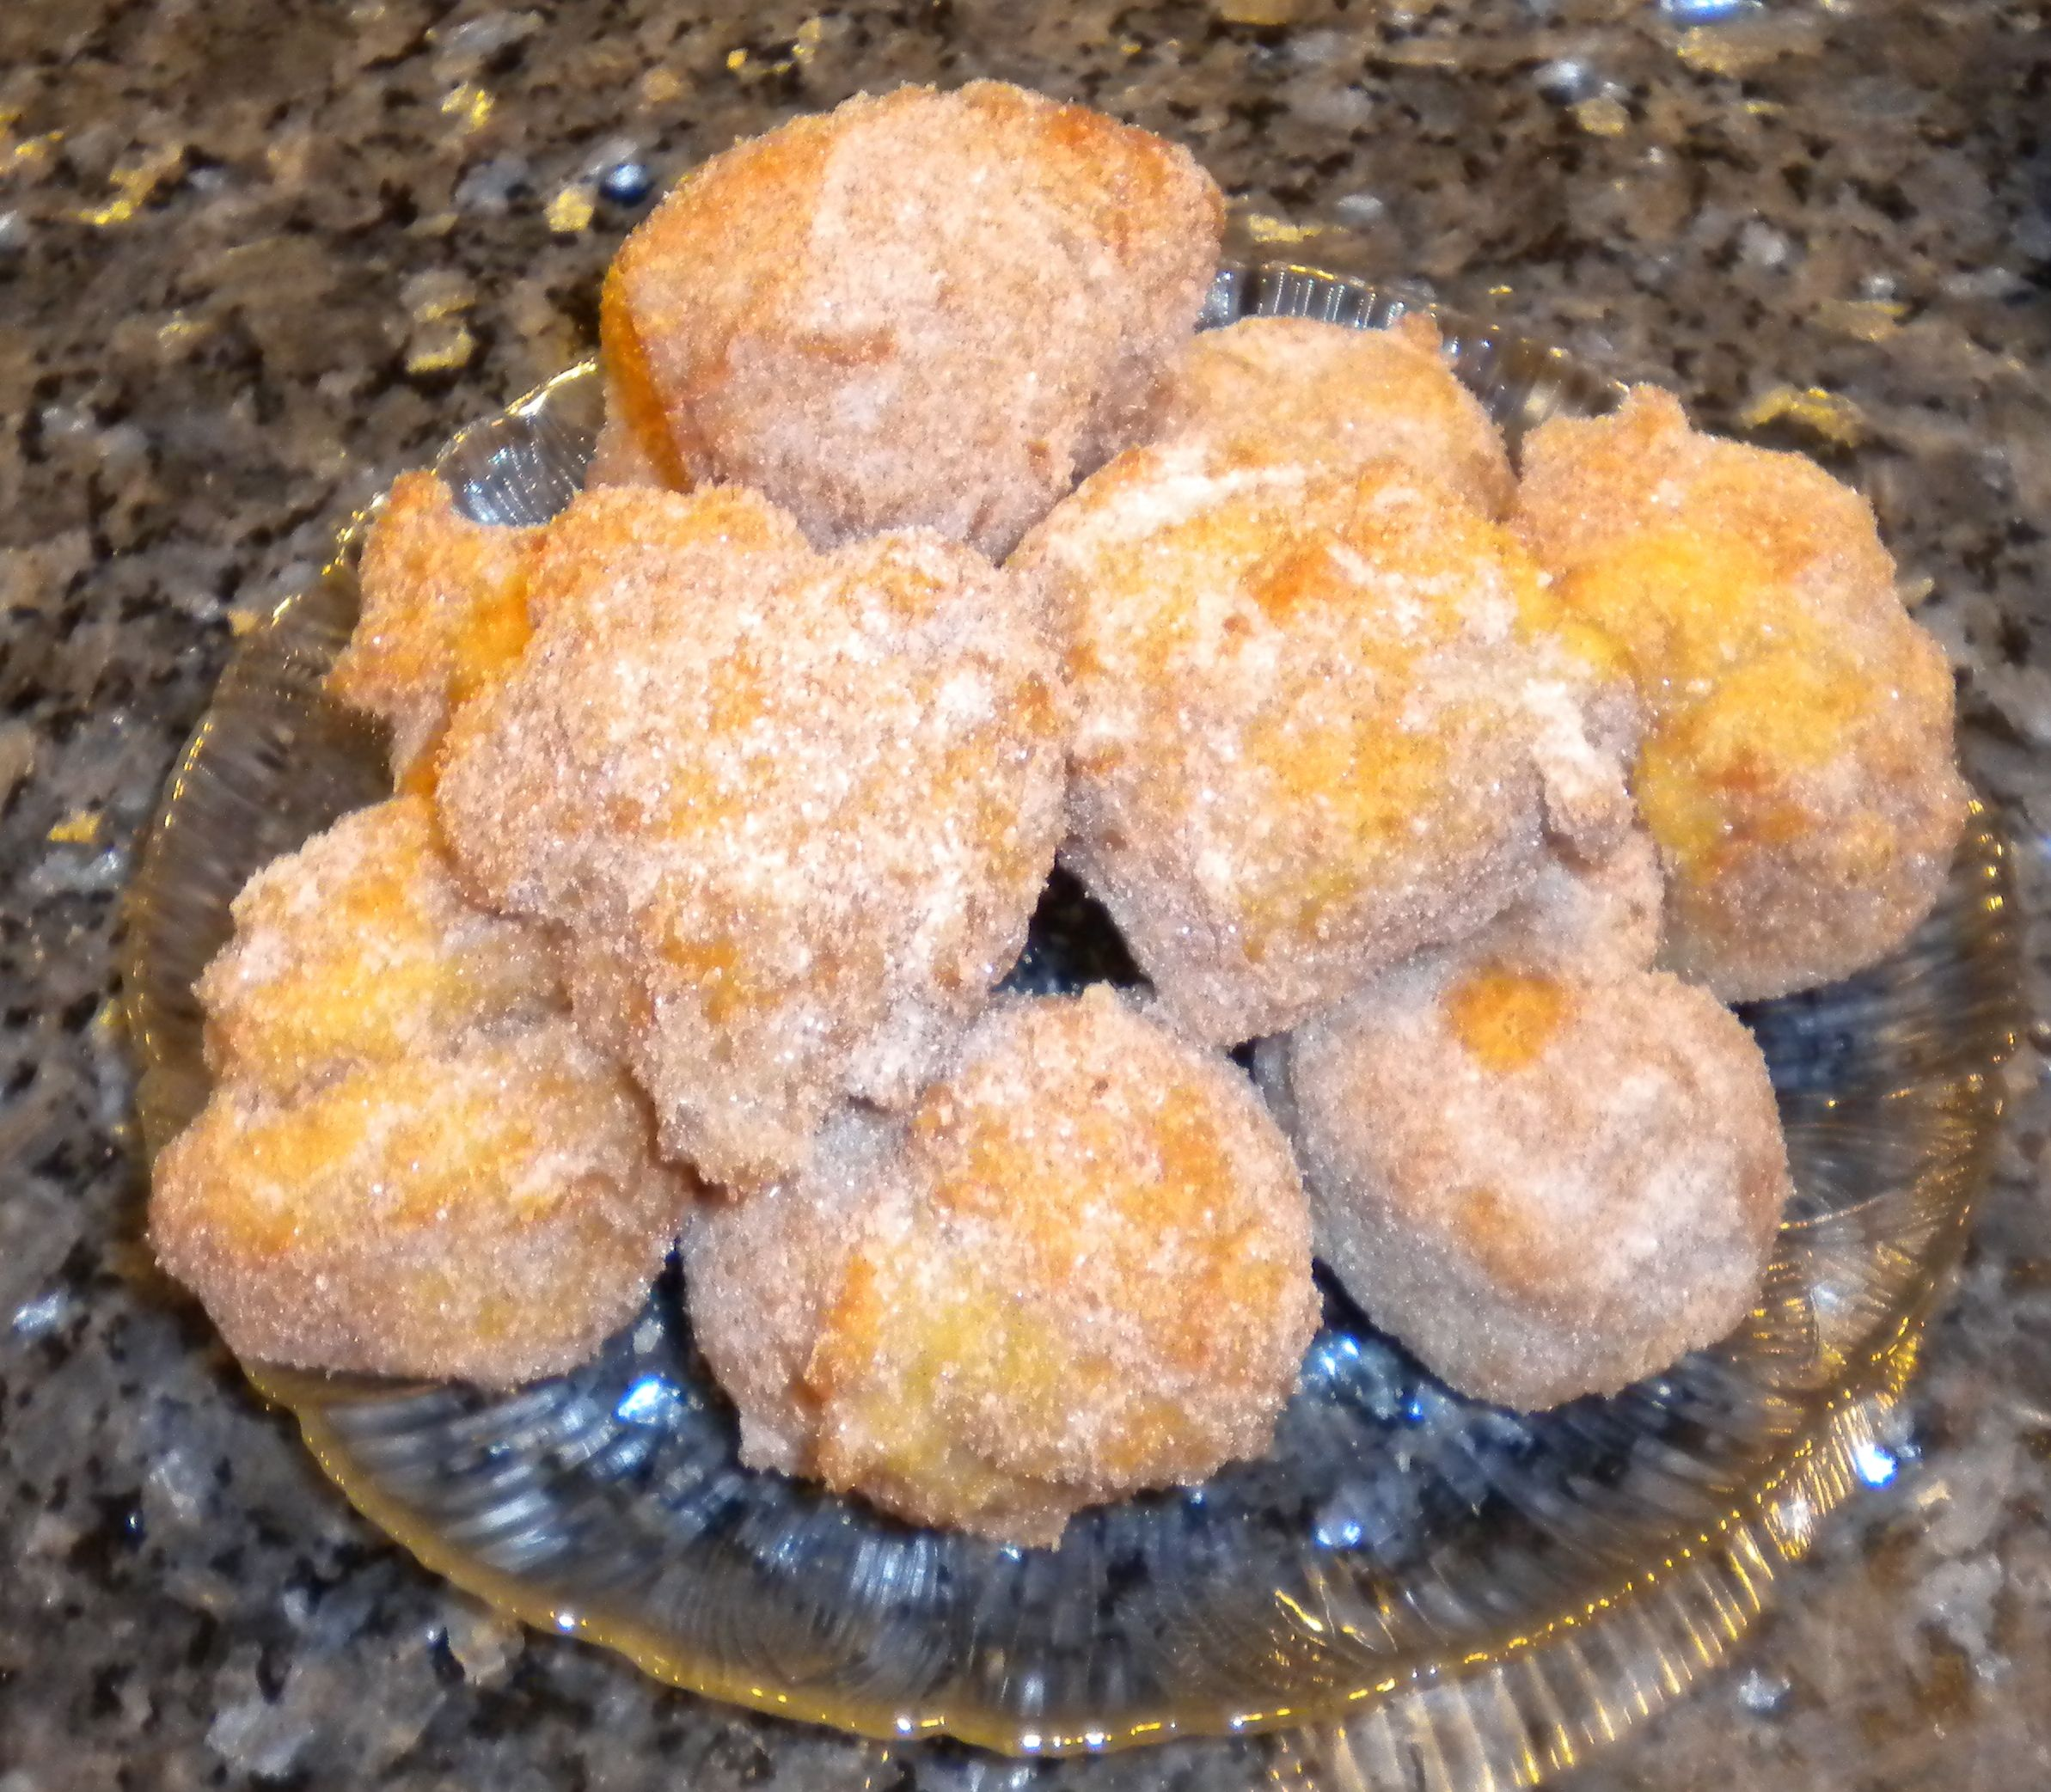 Cinnamon Sugar Zeppoles Italian Fried Donut Holes In Case You Didn T Know